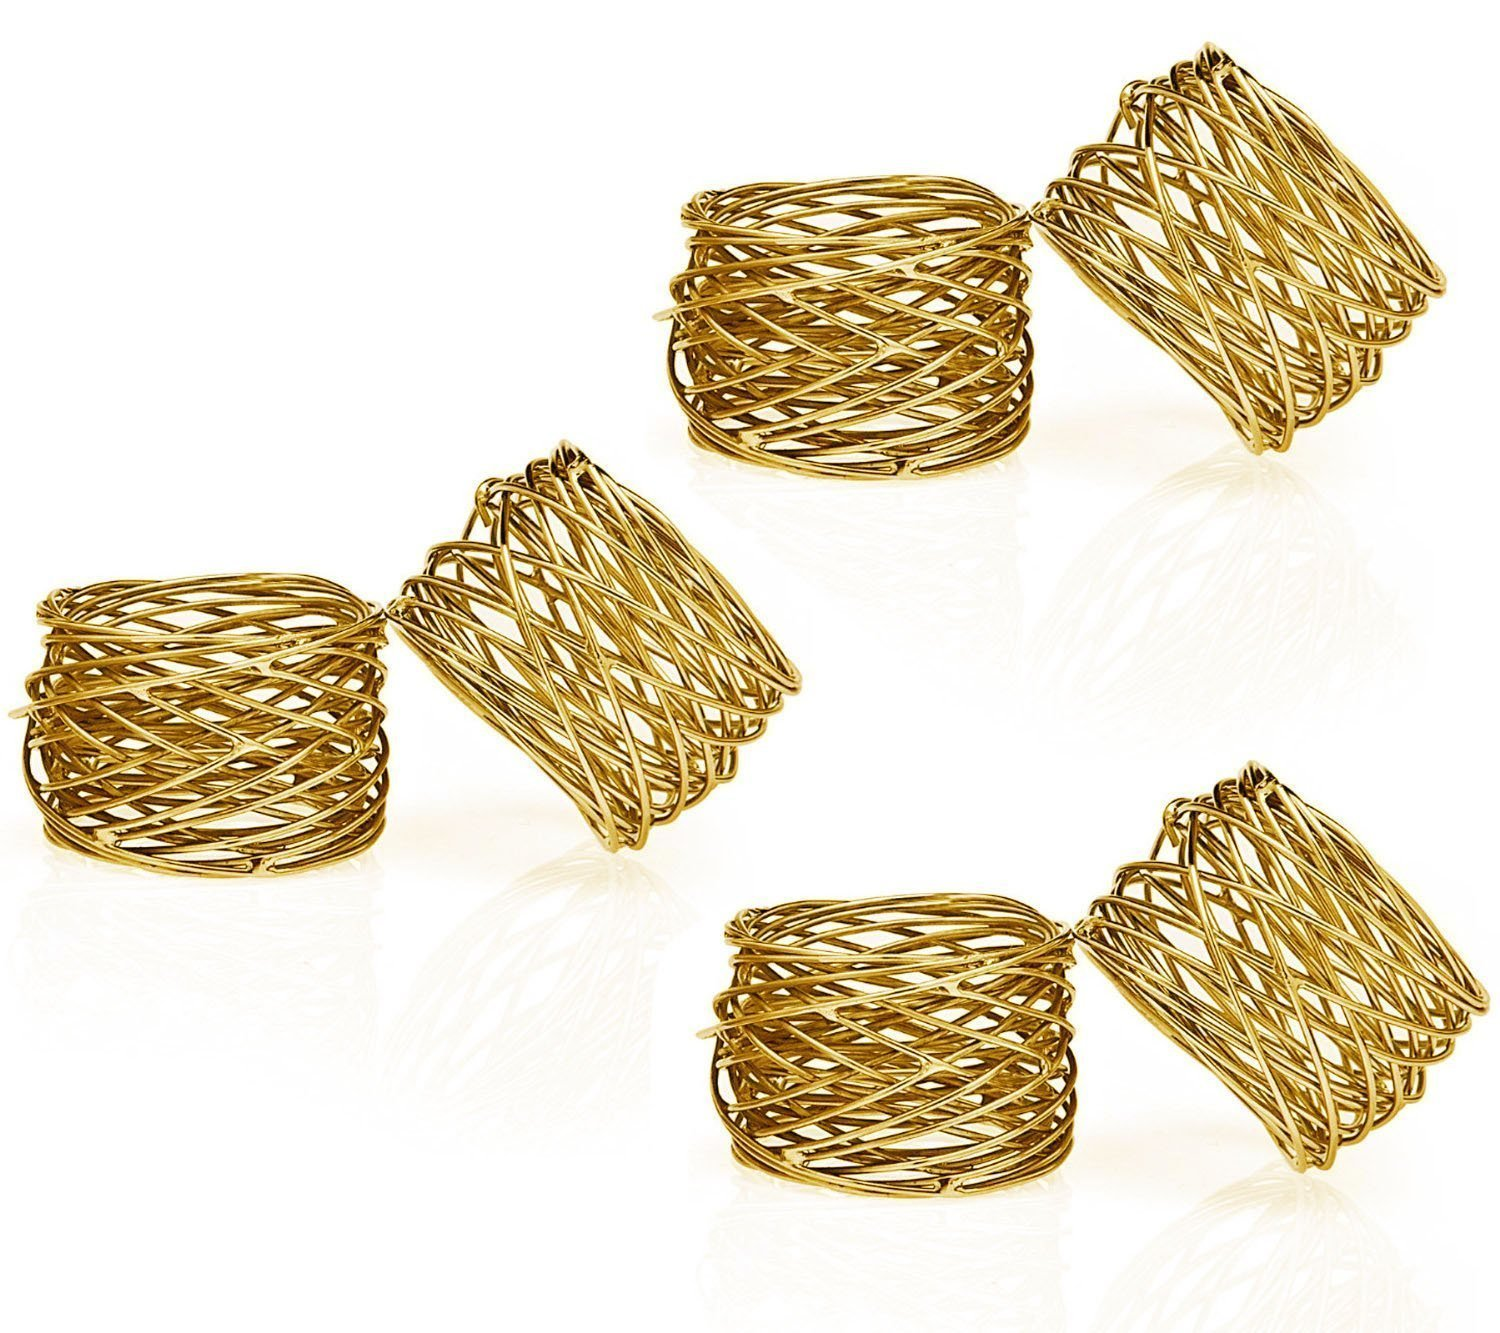 SKAVIJ Handmade Gold Napkin Rings Set of 4 Round Mesh for Weddings Dinner Parties or Every Day Use M-NR1